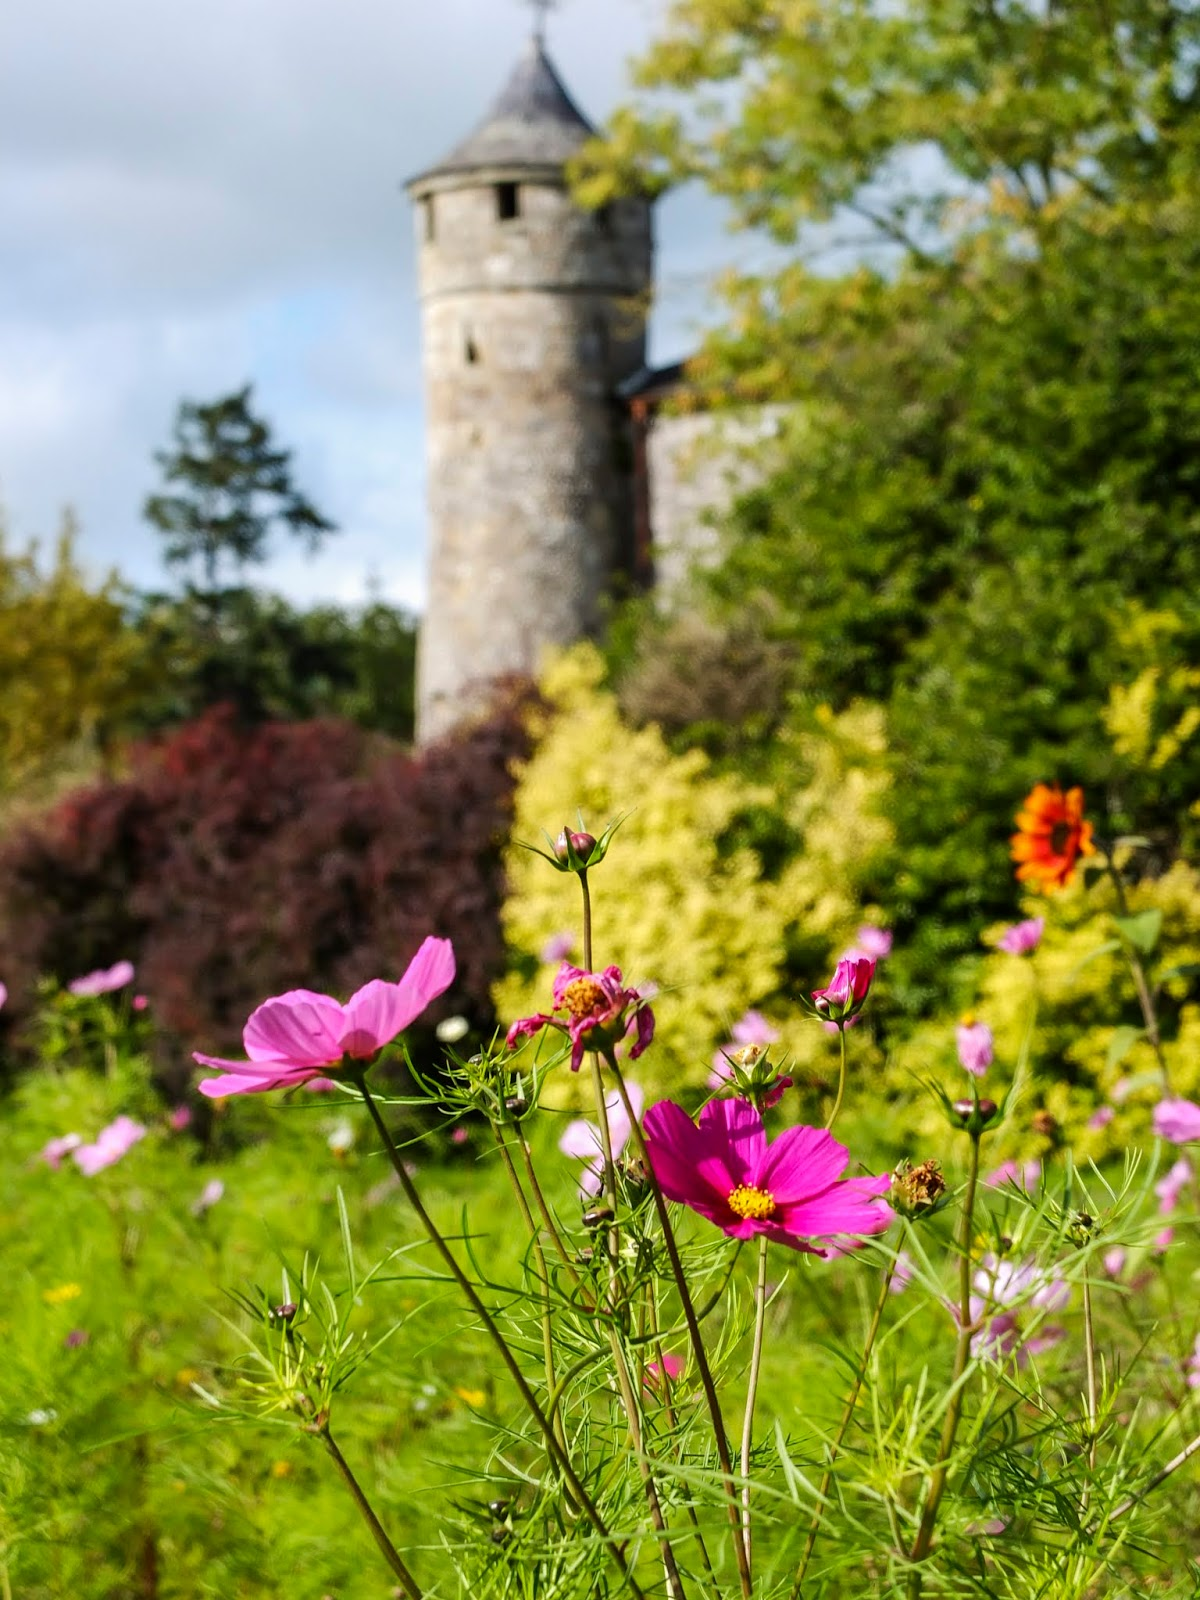 Pink cosmos flowers in front of a round Cahir Castle tower.